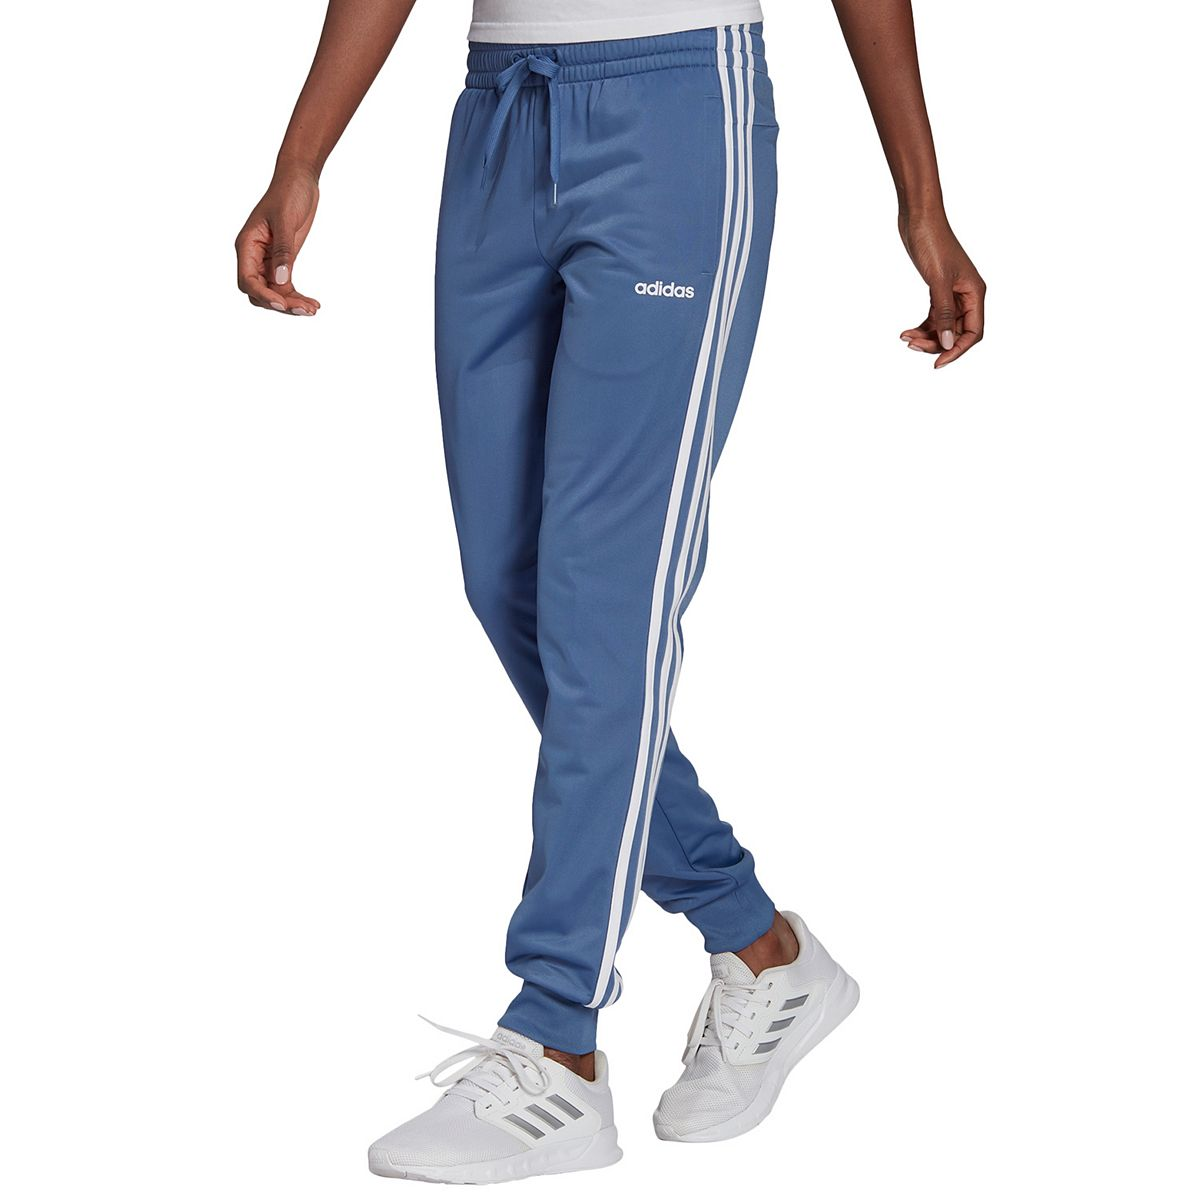 3-Stripes Tricot Pants